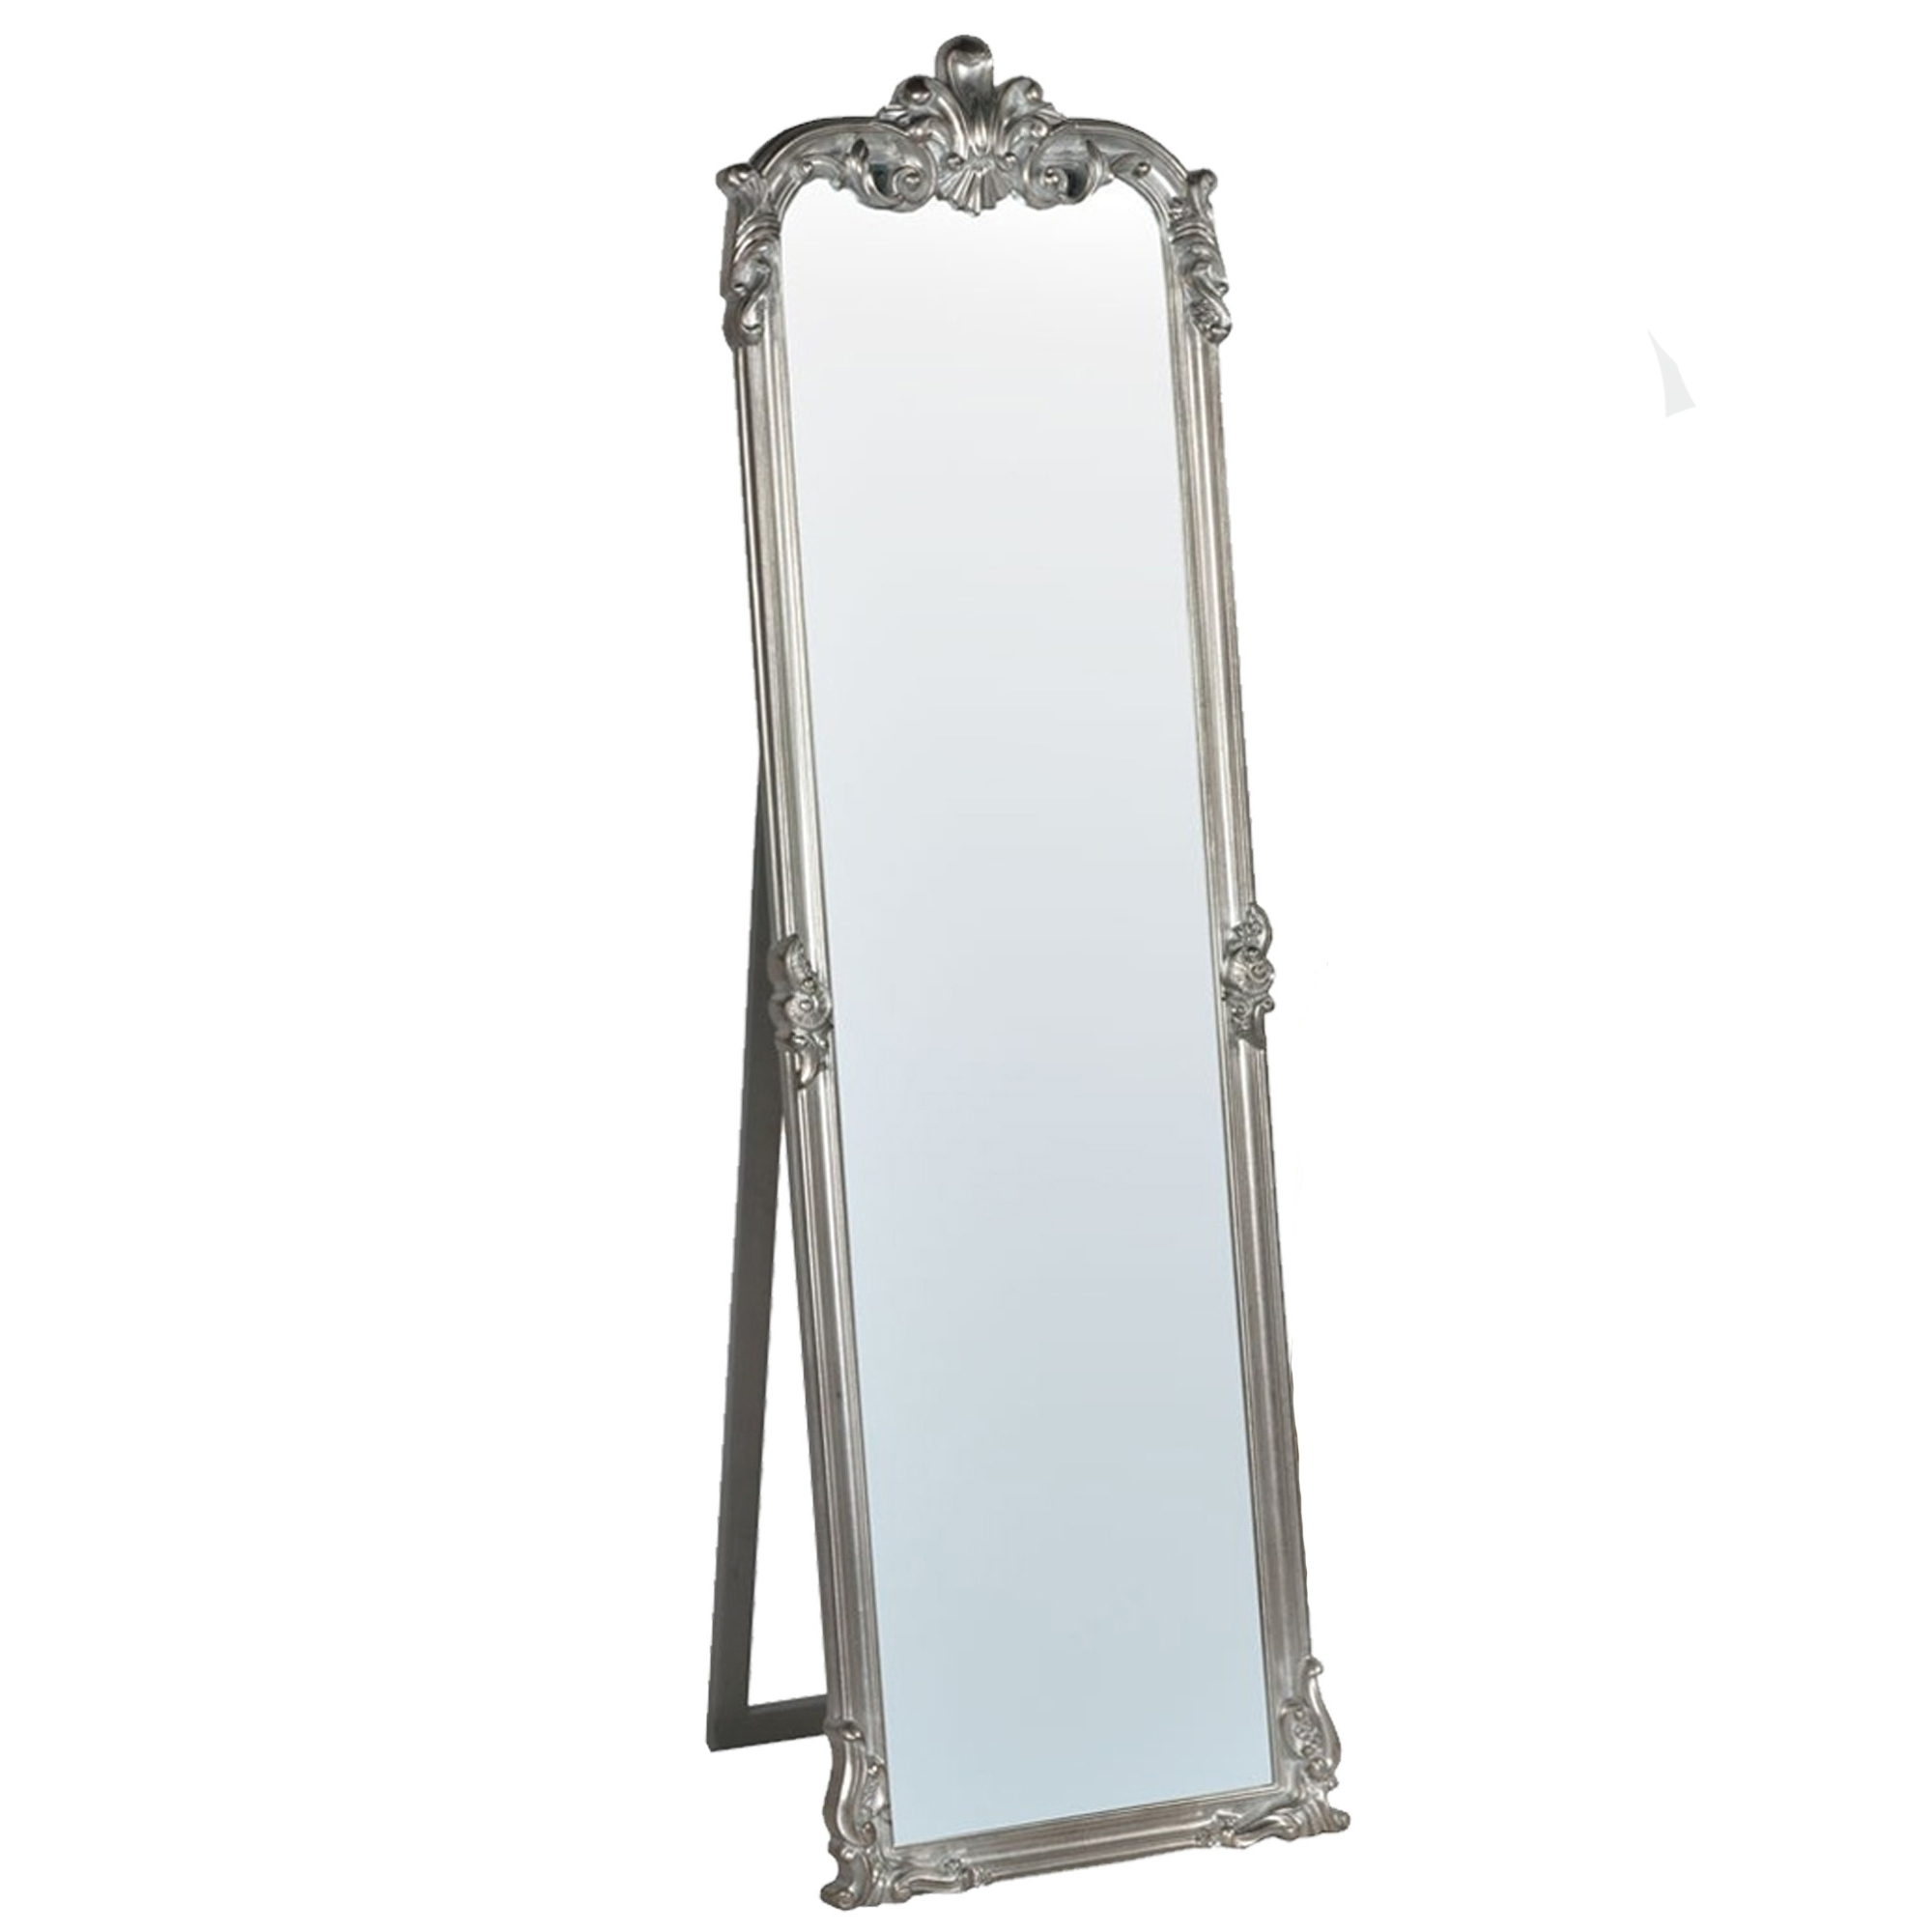 Silver rocaille antique french style mirror french style for French mirror